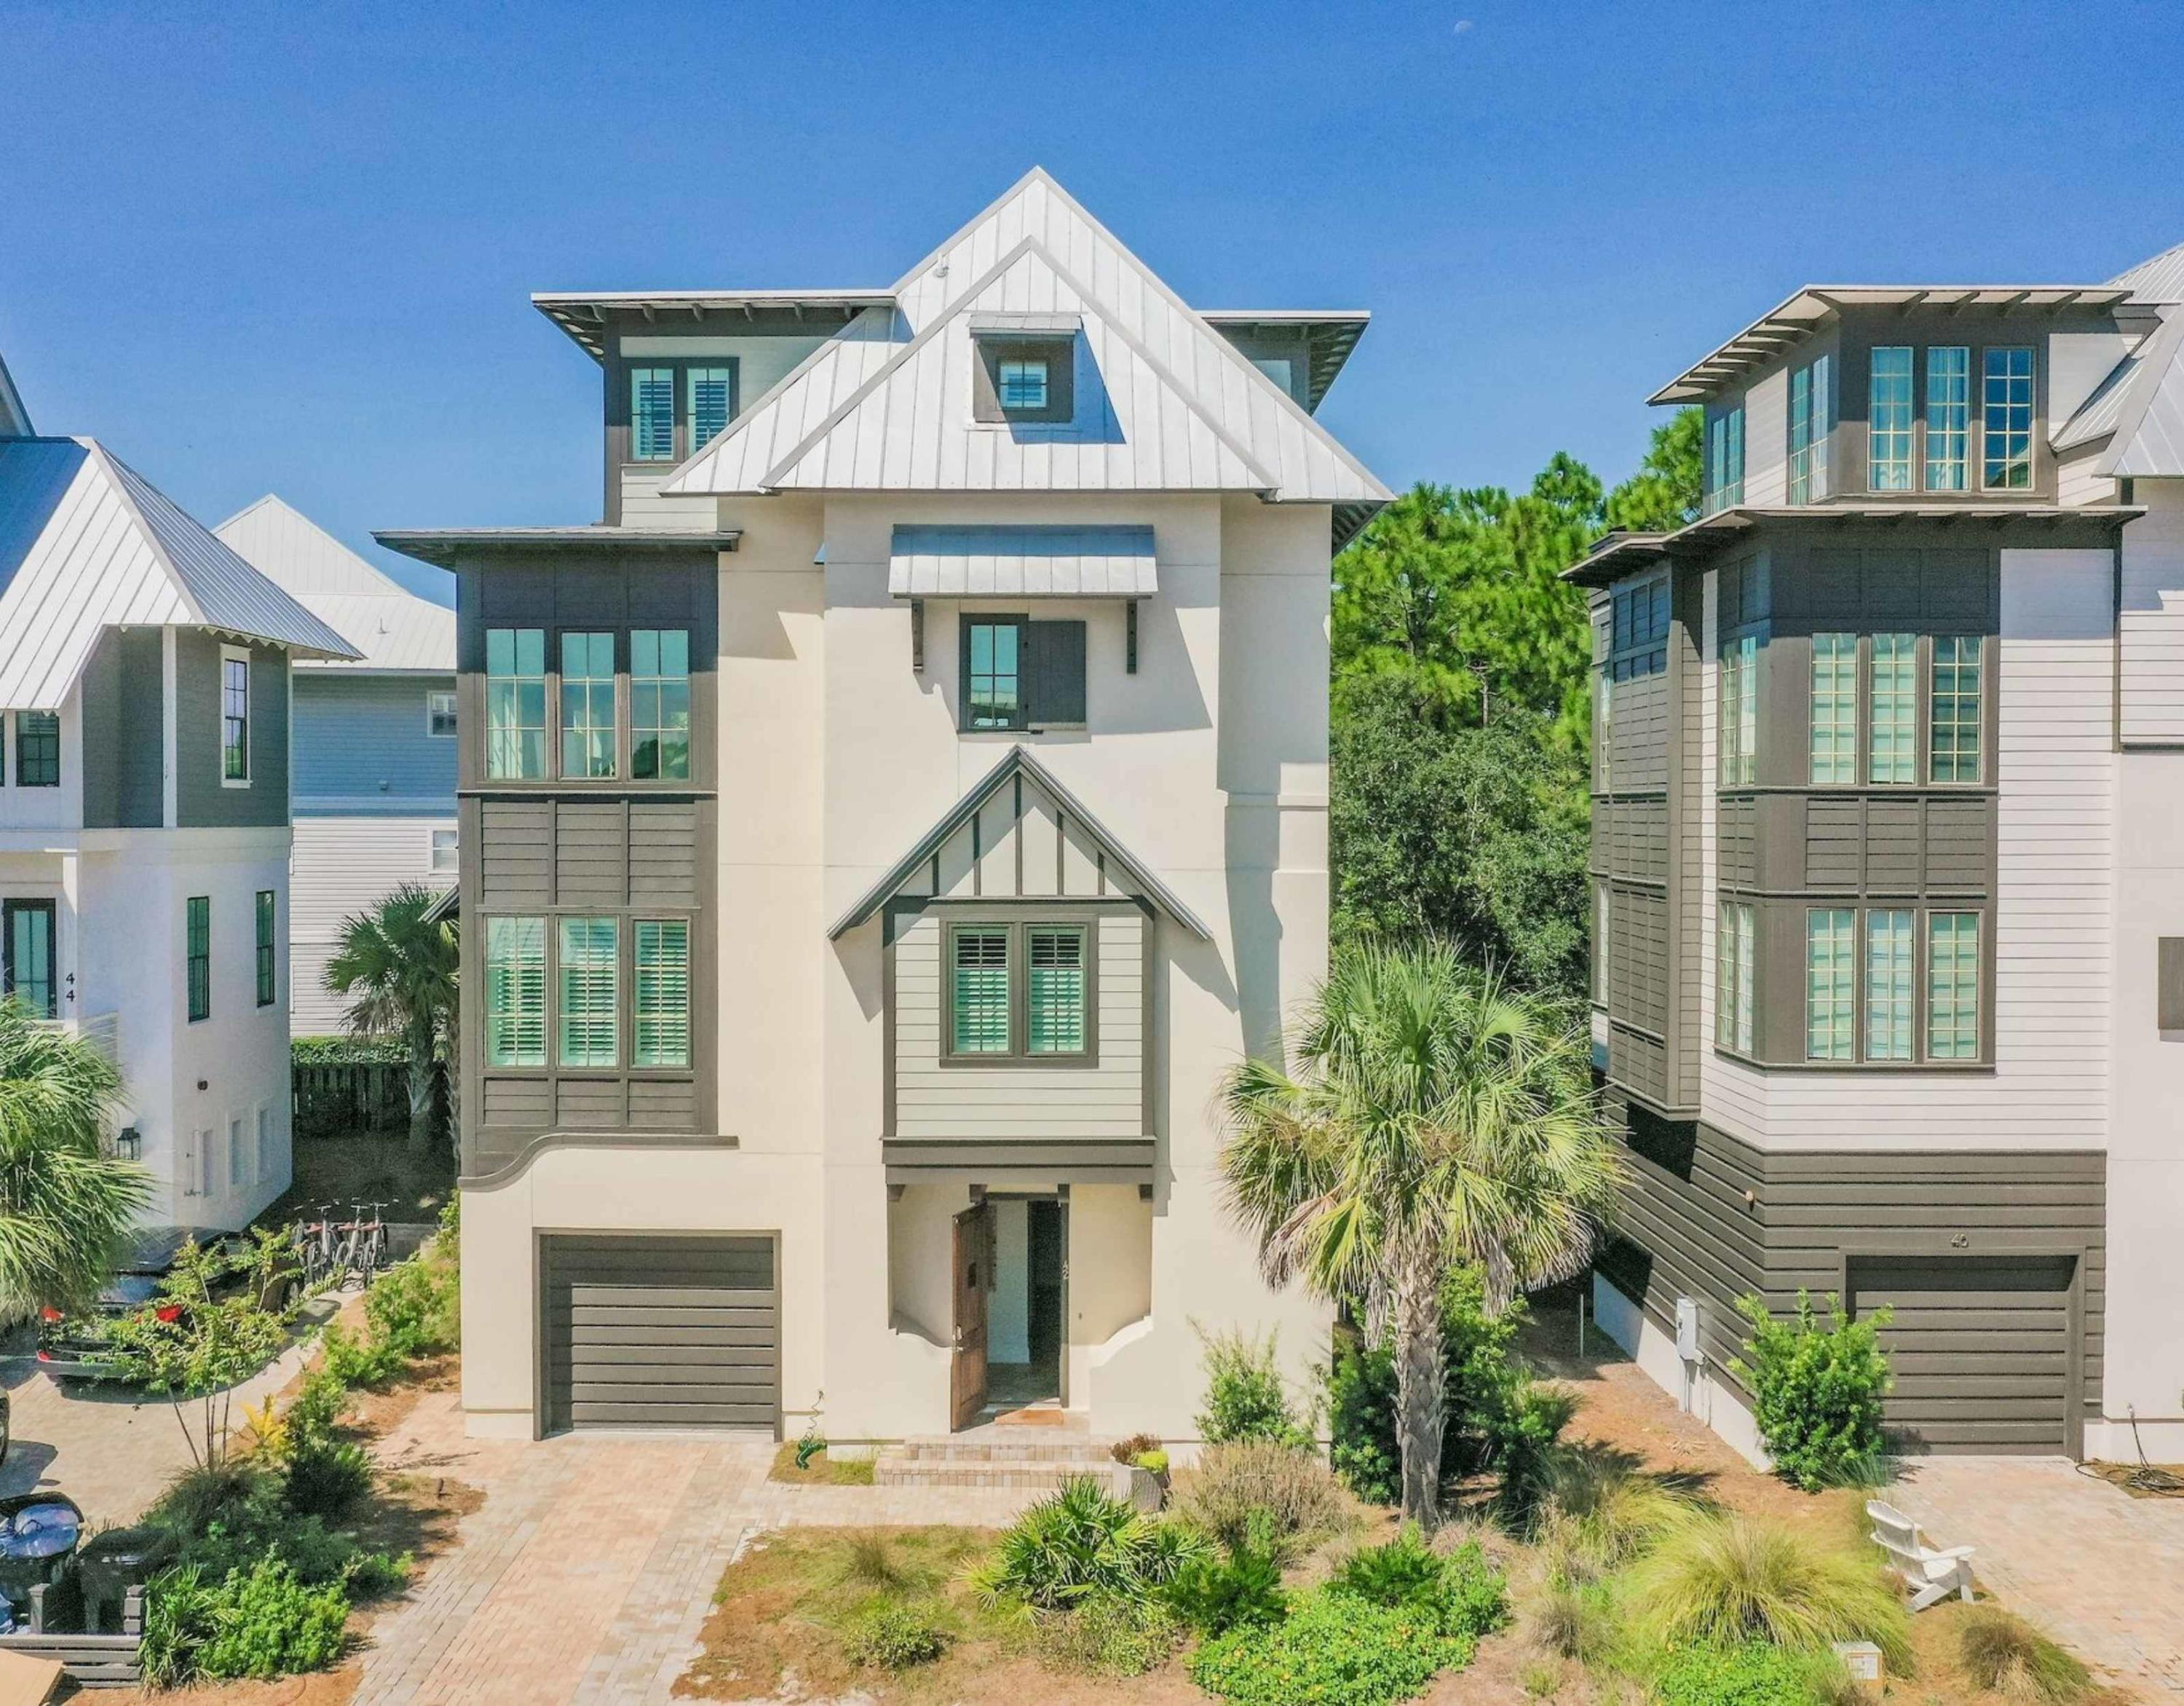 This generously appointed and well-decorated 5 brm/4.5 bath beach home is located south of 30A in the quaint community of Tresca Place in Seagrove Beach. You're just steps away from the community pool and a short walk from the beautiful Gulf of Mexico beaches. This area of Seagrove allows for quiet enjoyment and relaxation at the beach, as well as close proximity to the dining and entertainment of Rosemary Beach and Seaside. Built in 2015, the home features hardwood floors throughout, SONOS home sound system, an elevator that travels to all floors, and gorgeous modern finishes. The home is professionally decorated with coastal inspired decor and furnishings. Relax in the open concept living/dining area on the third floor with over-sized windows looking at the surrounding community.